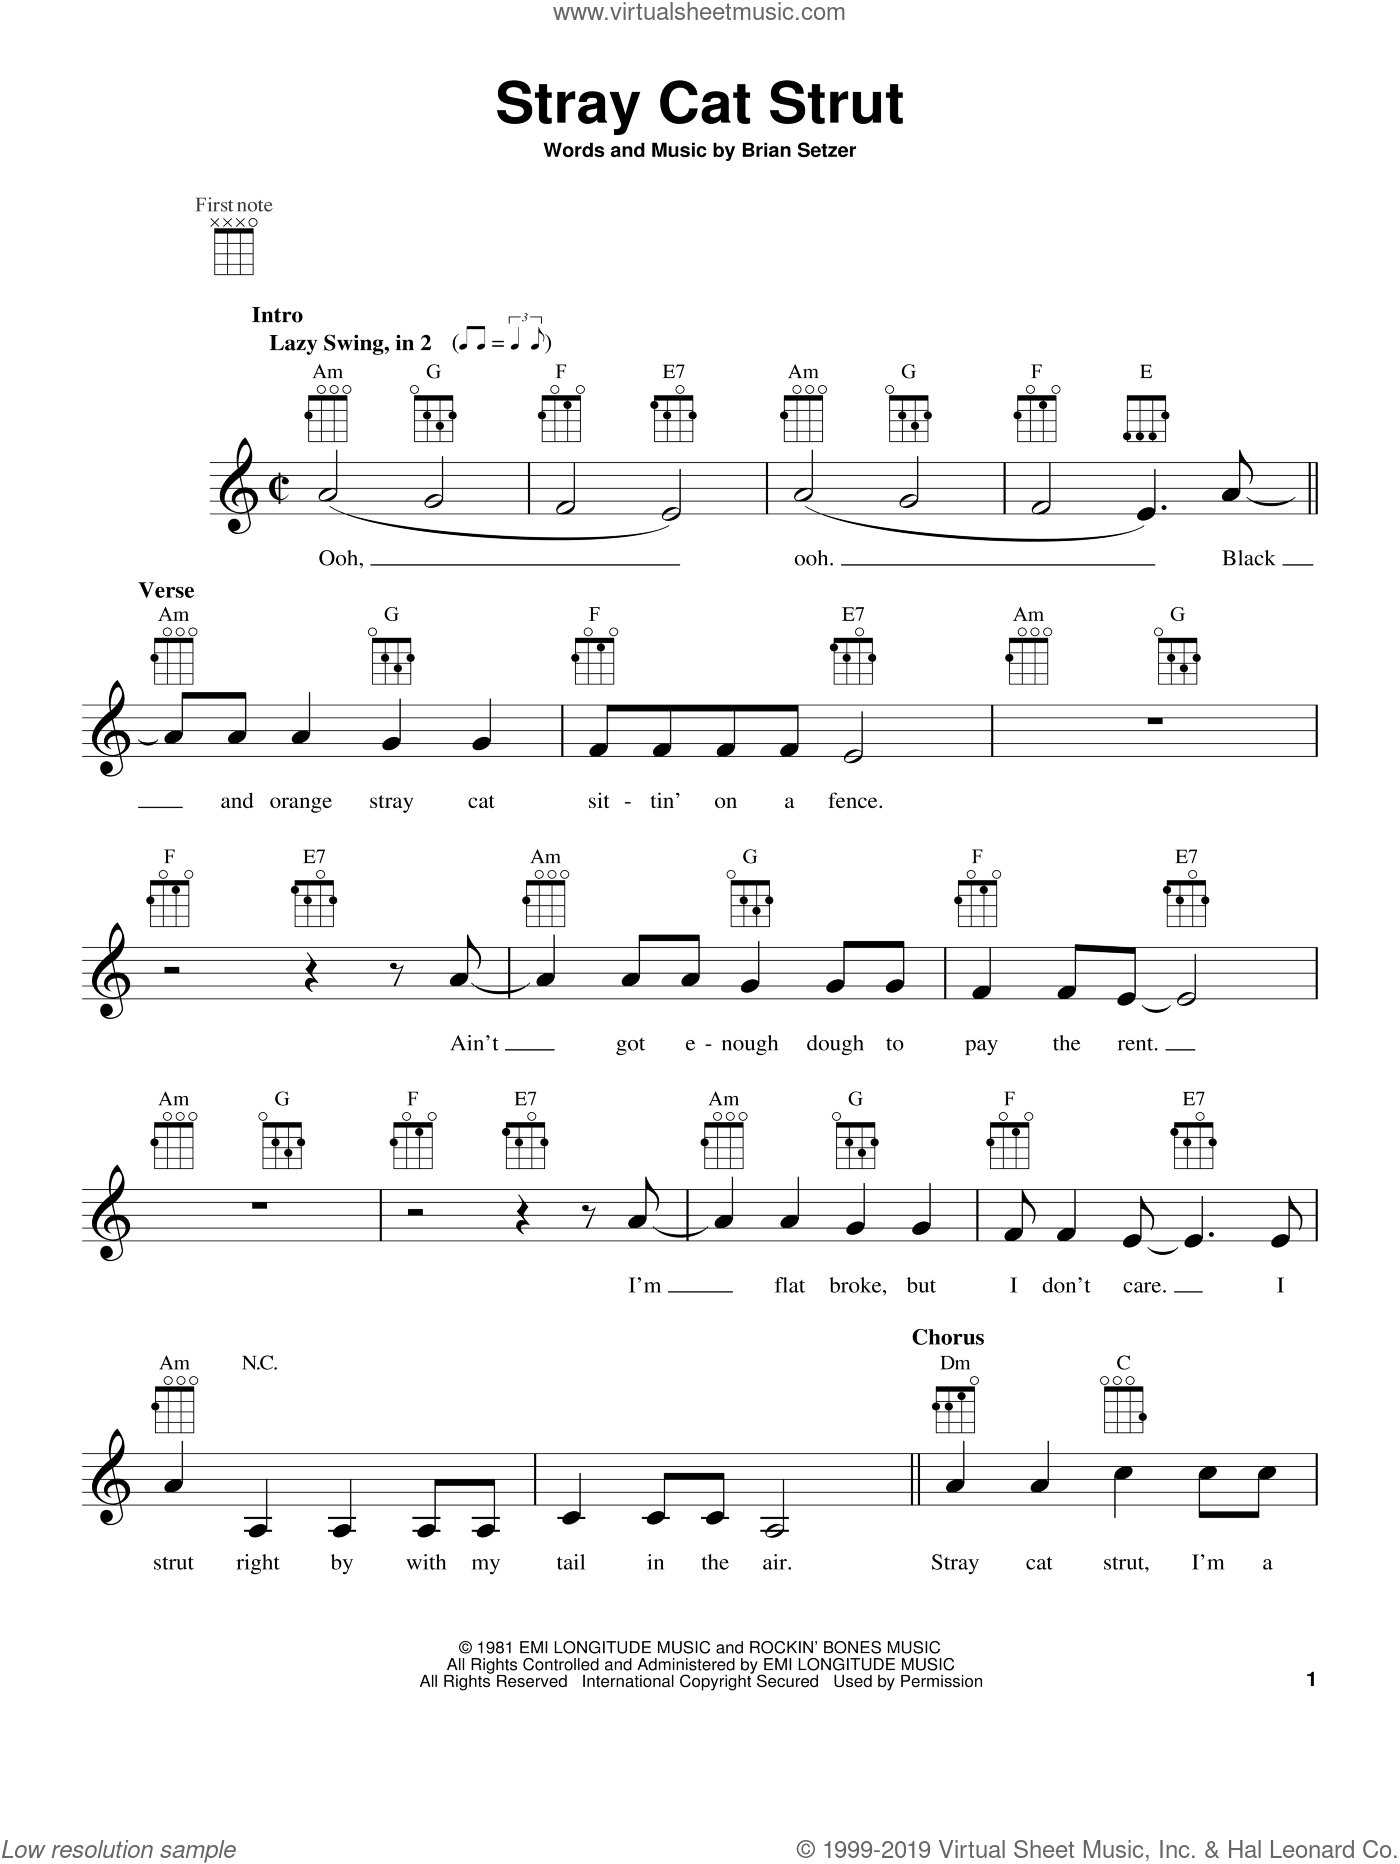 Stray Cat Strut sheet music for ukulele by Stray Cats. Score Image Preview.